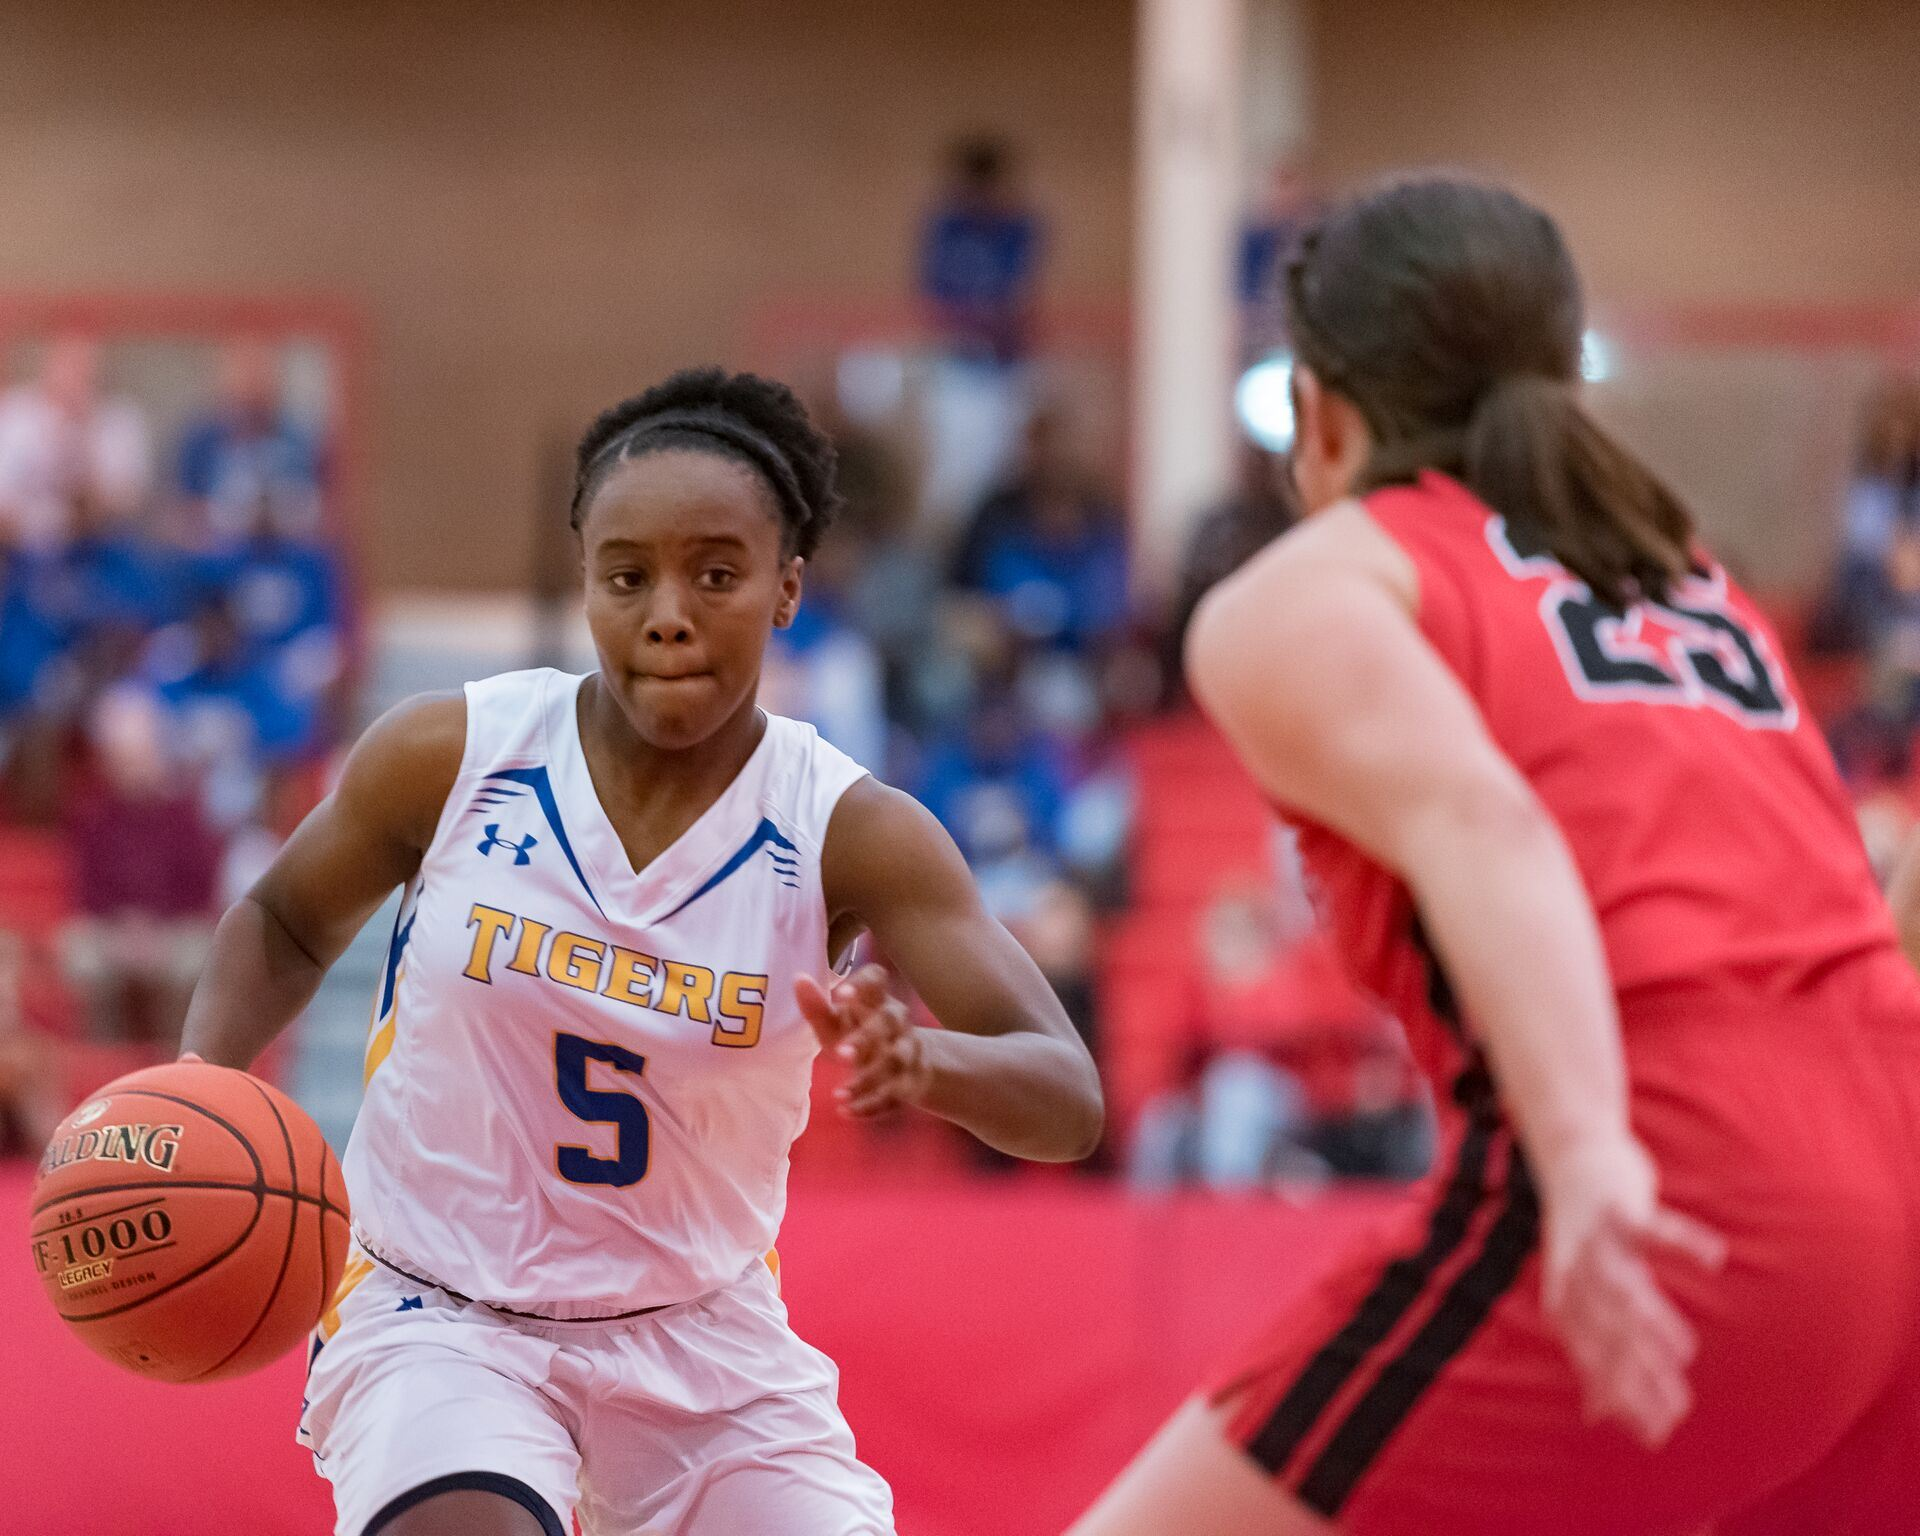 Black women wearing a white uniform playing basketball against white woman wearing a red uniform